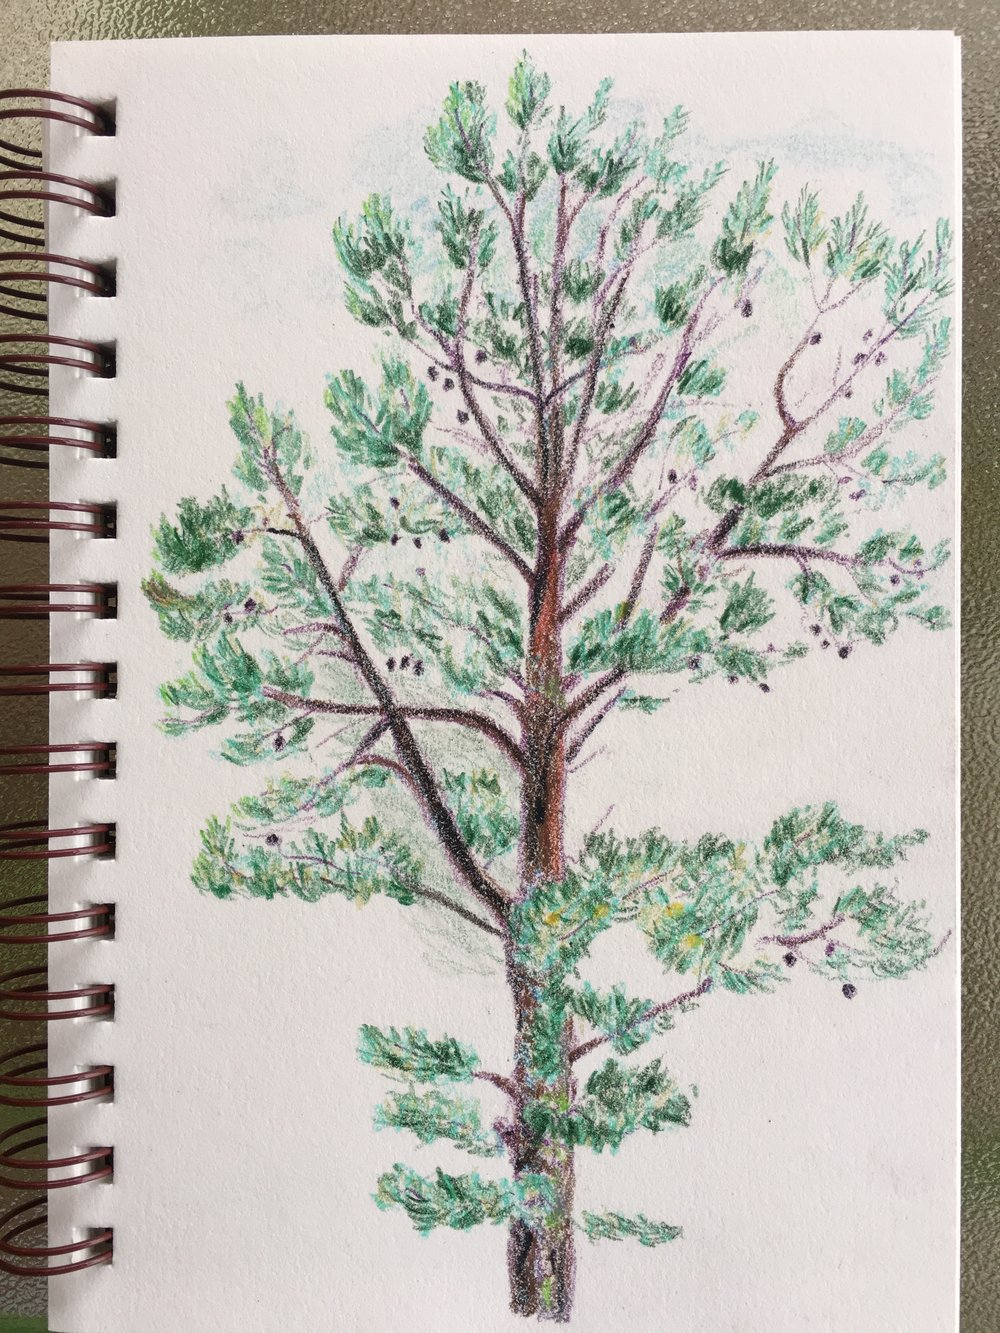 Portrait of a pitch pine, watercolour pencils, North Carolina, June 2017